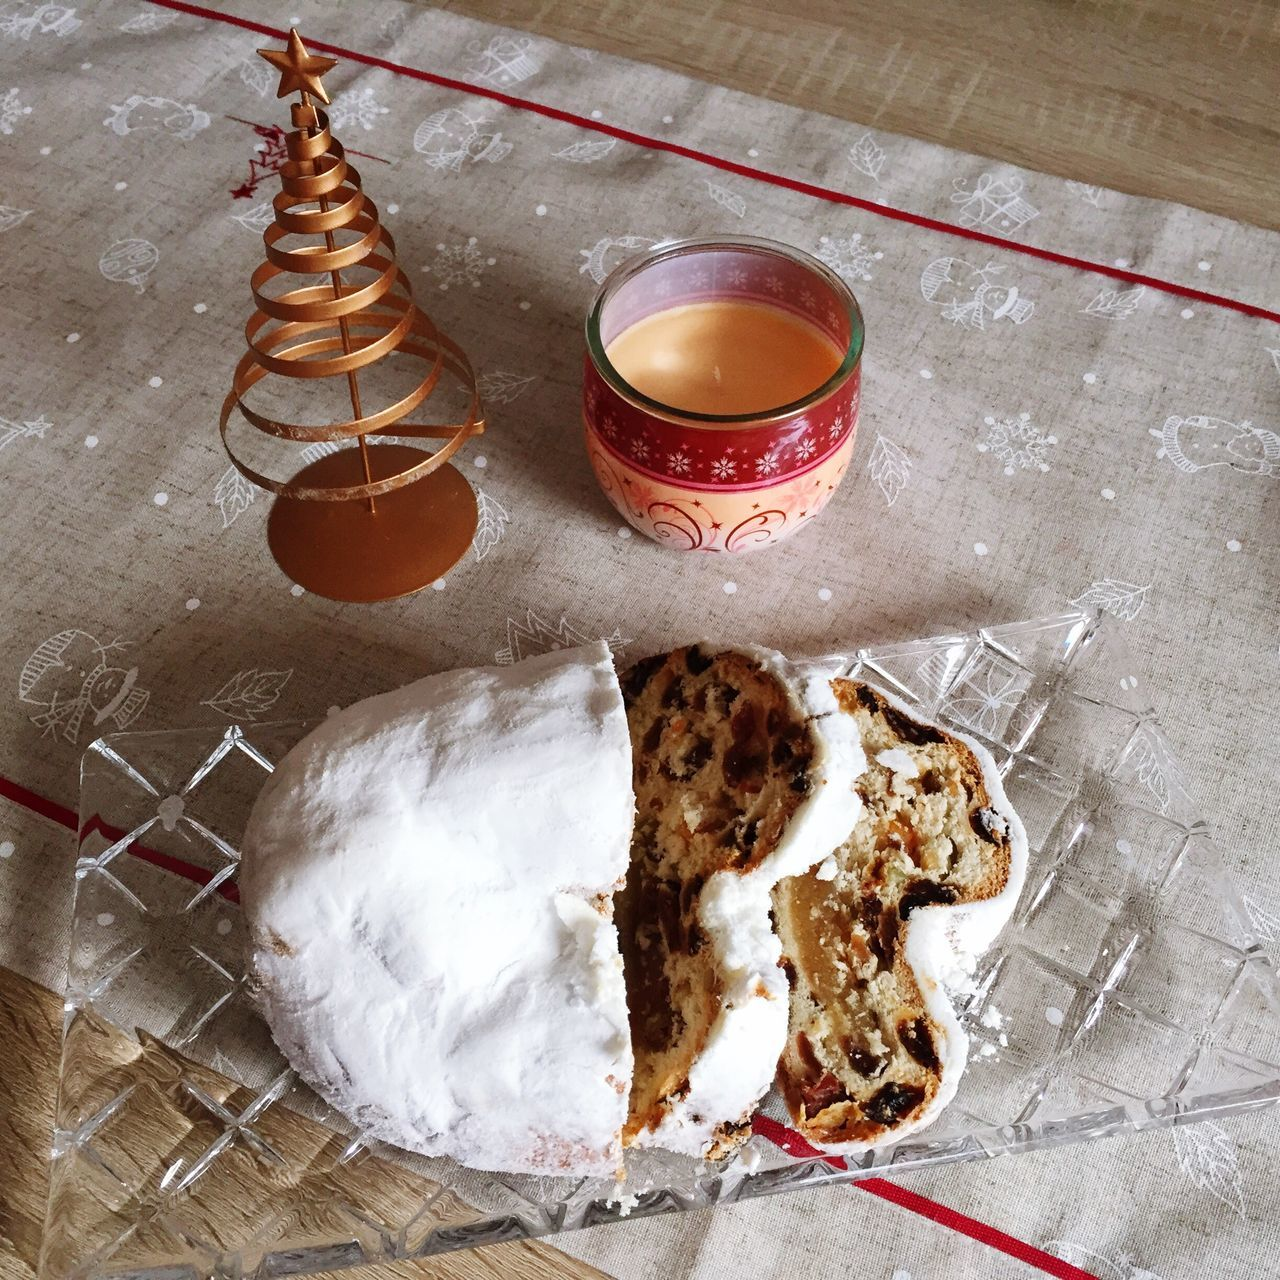 Christmas Stollen Breakfast Time Breakfast Christmas Christmas Decorations